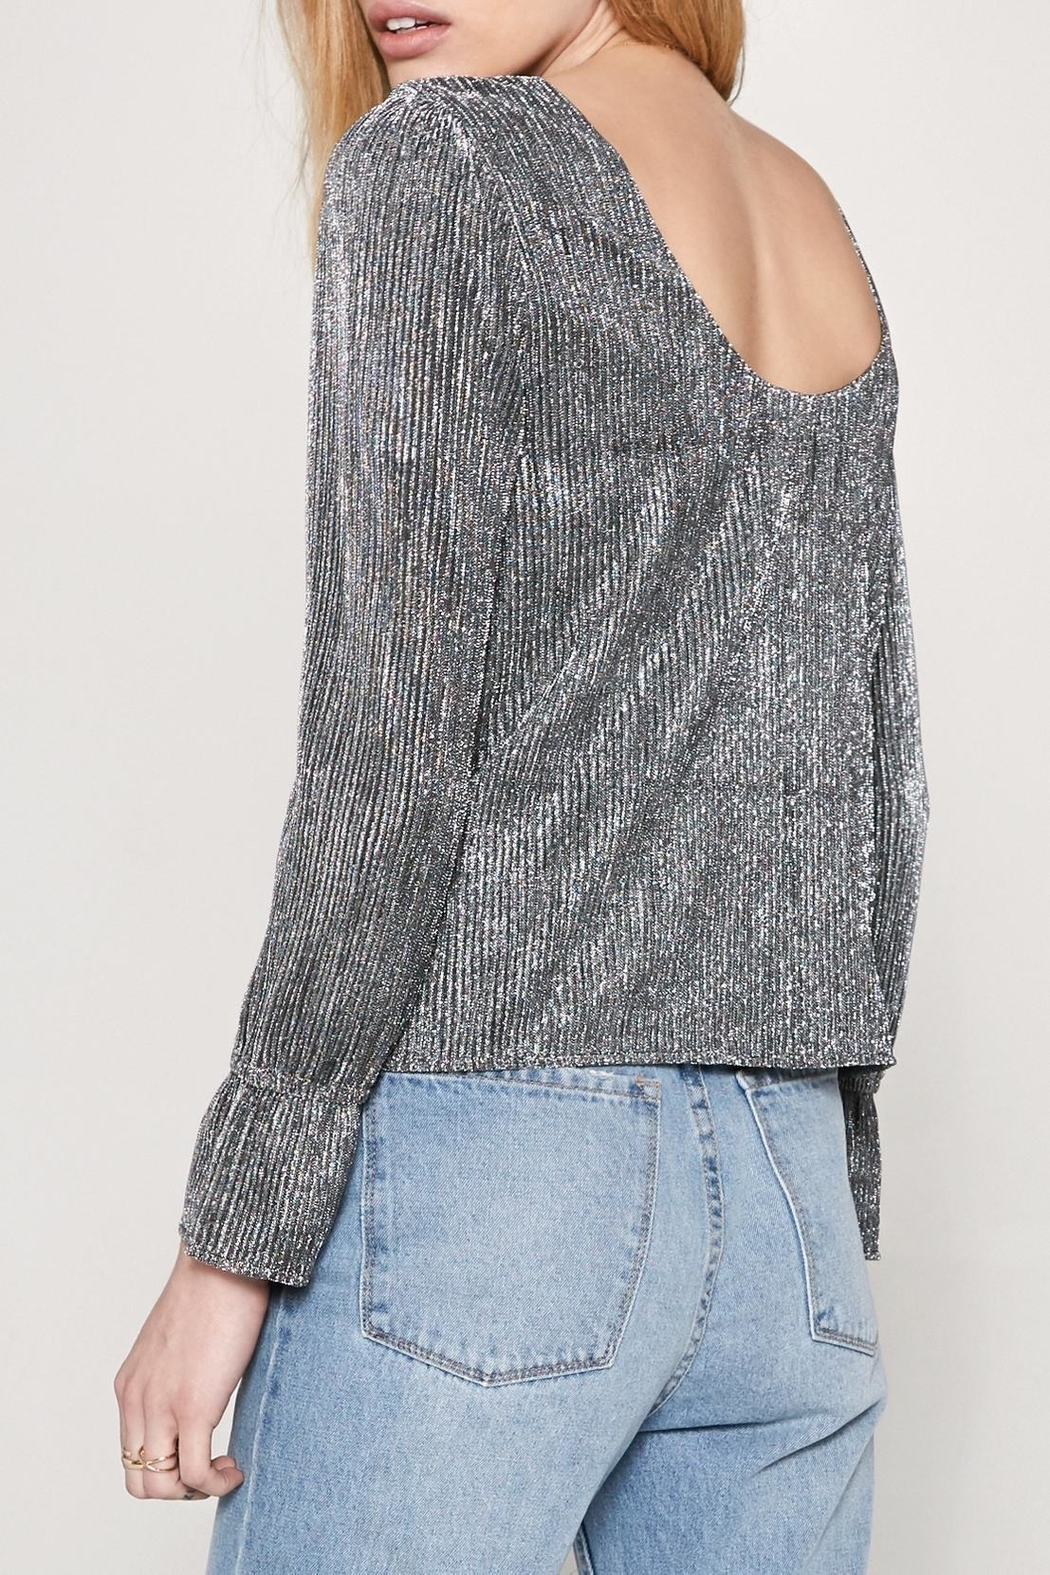 AMUSE SOCIETY Glimmer Top - Front Full Image